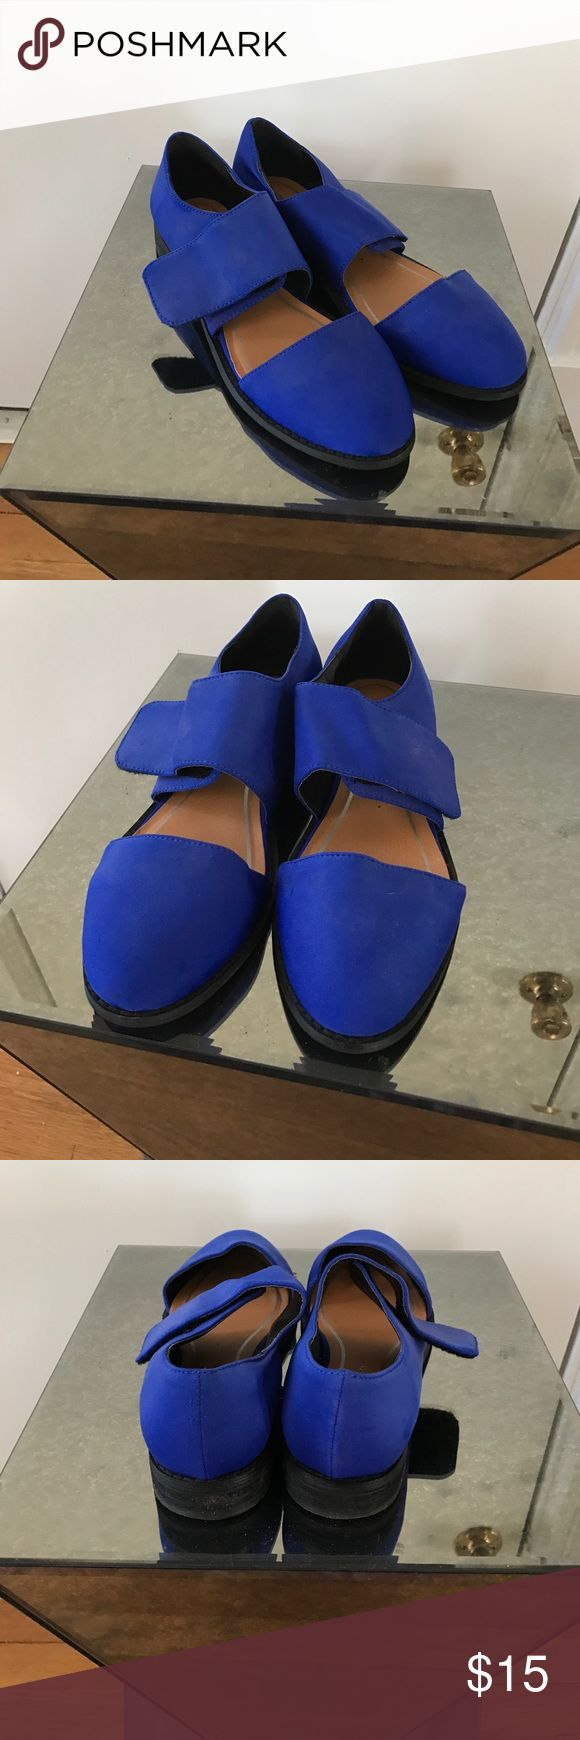 Deena & Ozzy cobalt blue d'orsay velcro flats 8 Gorgeous vibrant cobalt blue flats from deena & ozzy. Worn a couple times. They did get a little wrinkled in storage. Deena & Ozzy Shoes Flats & Loafers